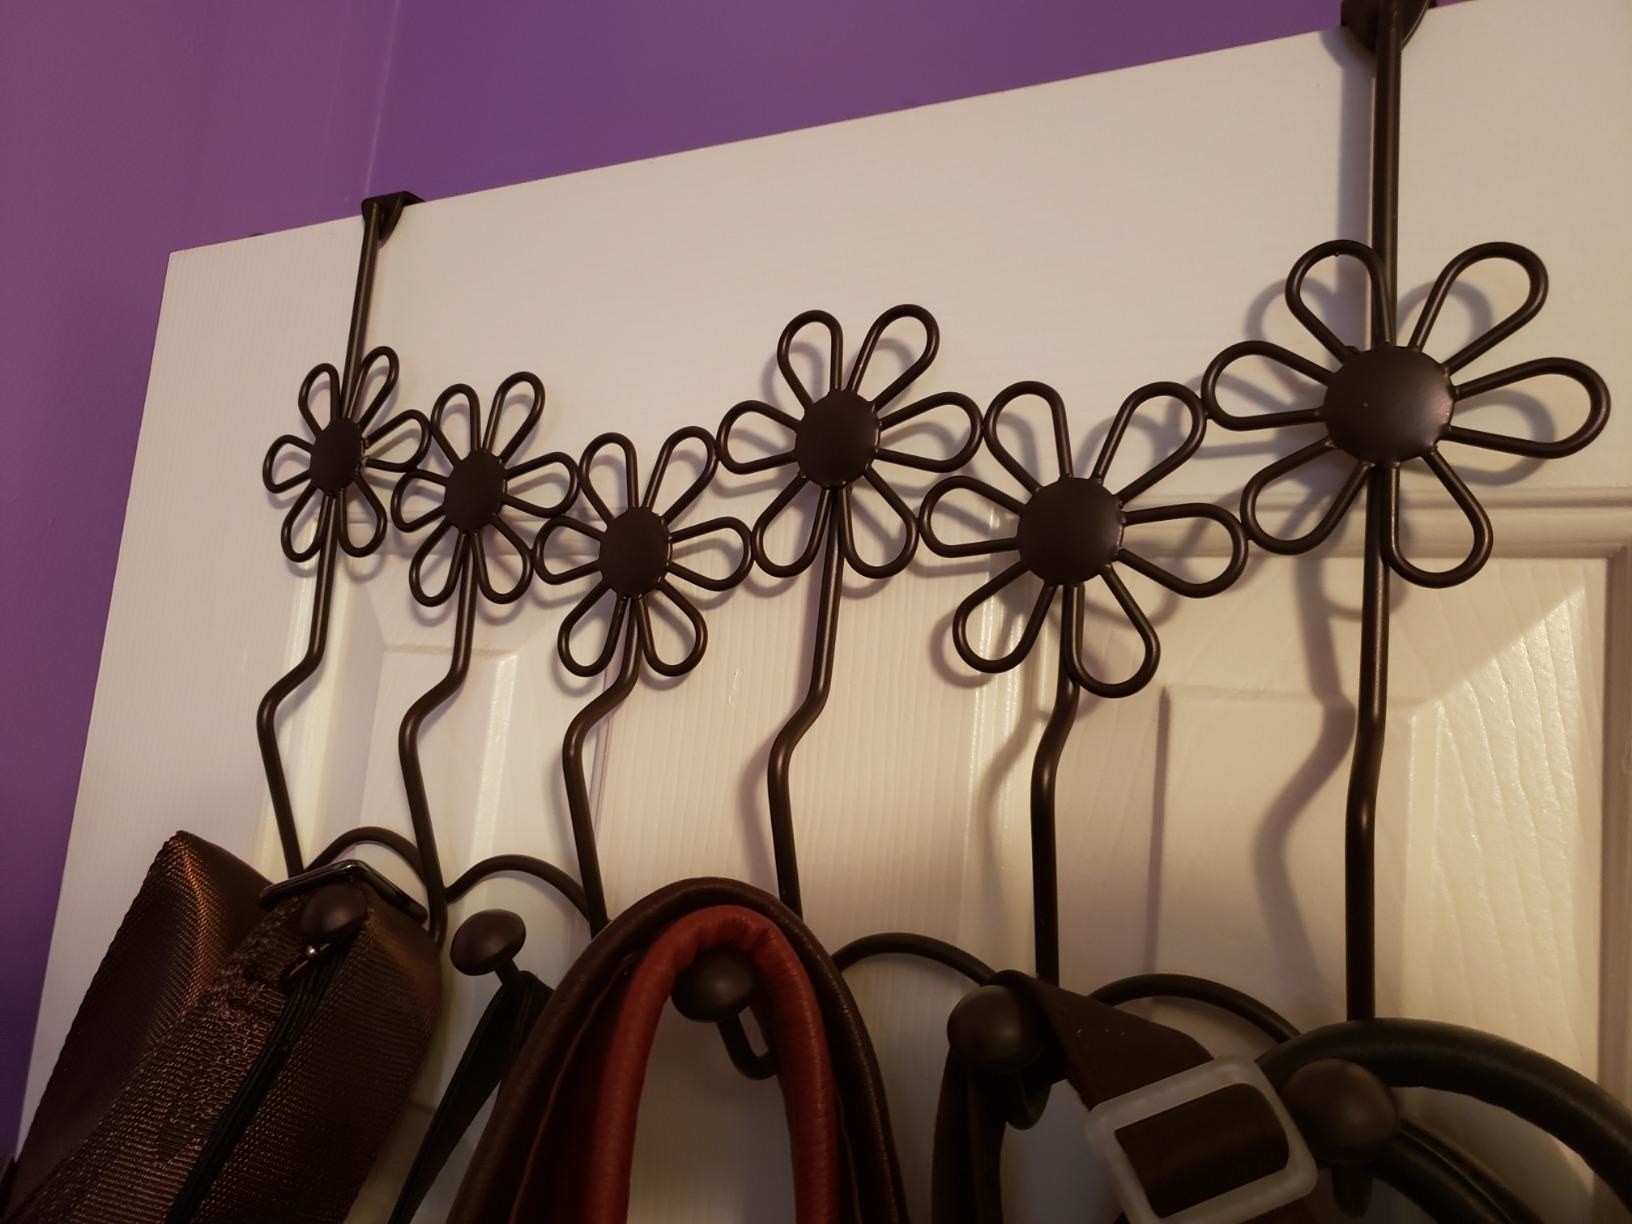 The floral design rack with hooks holding up some items